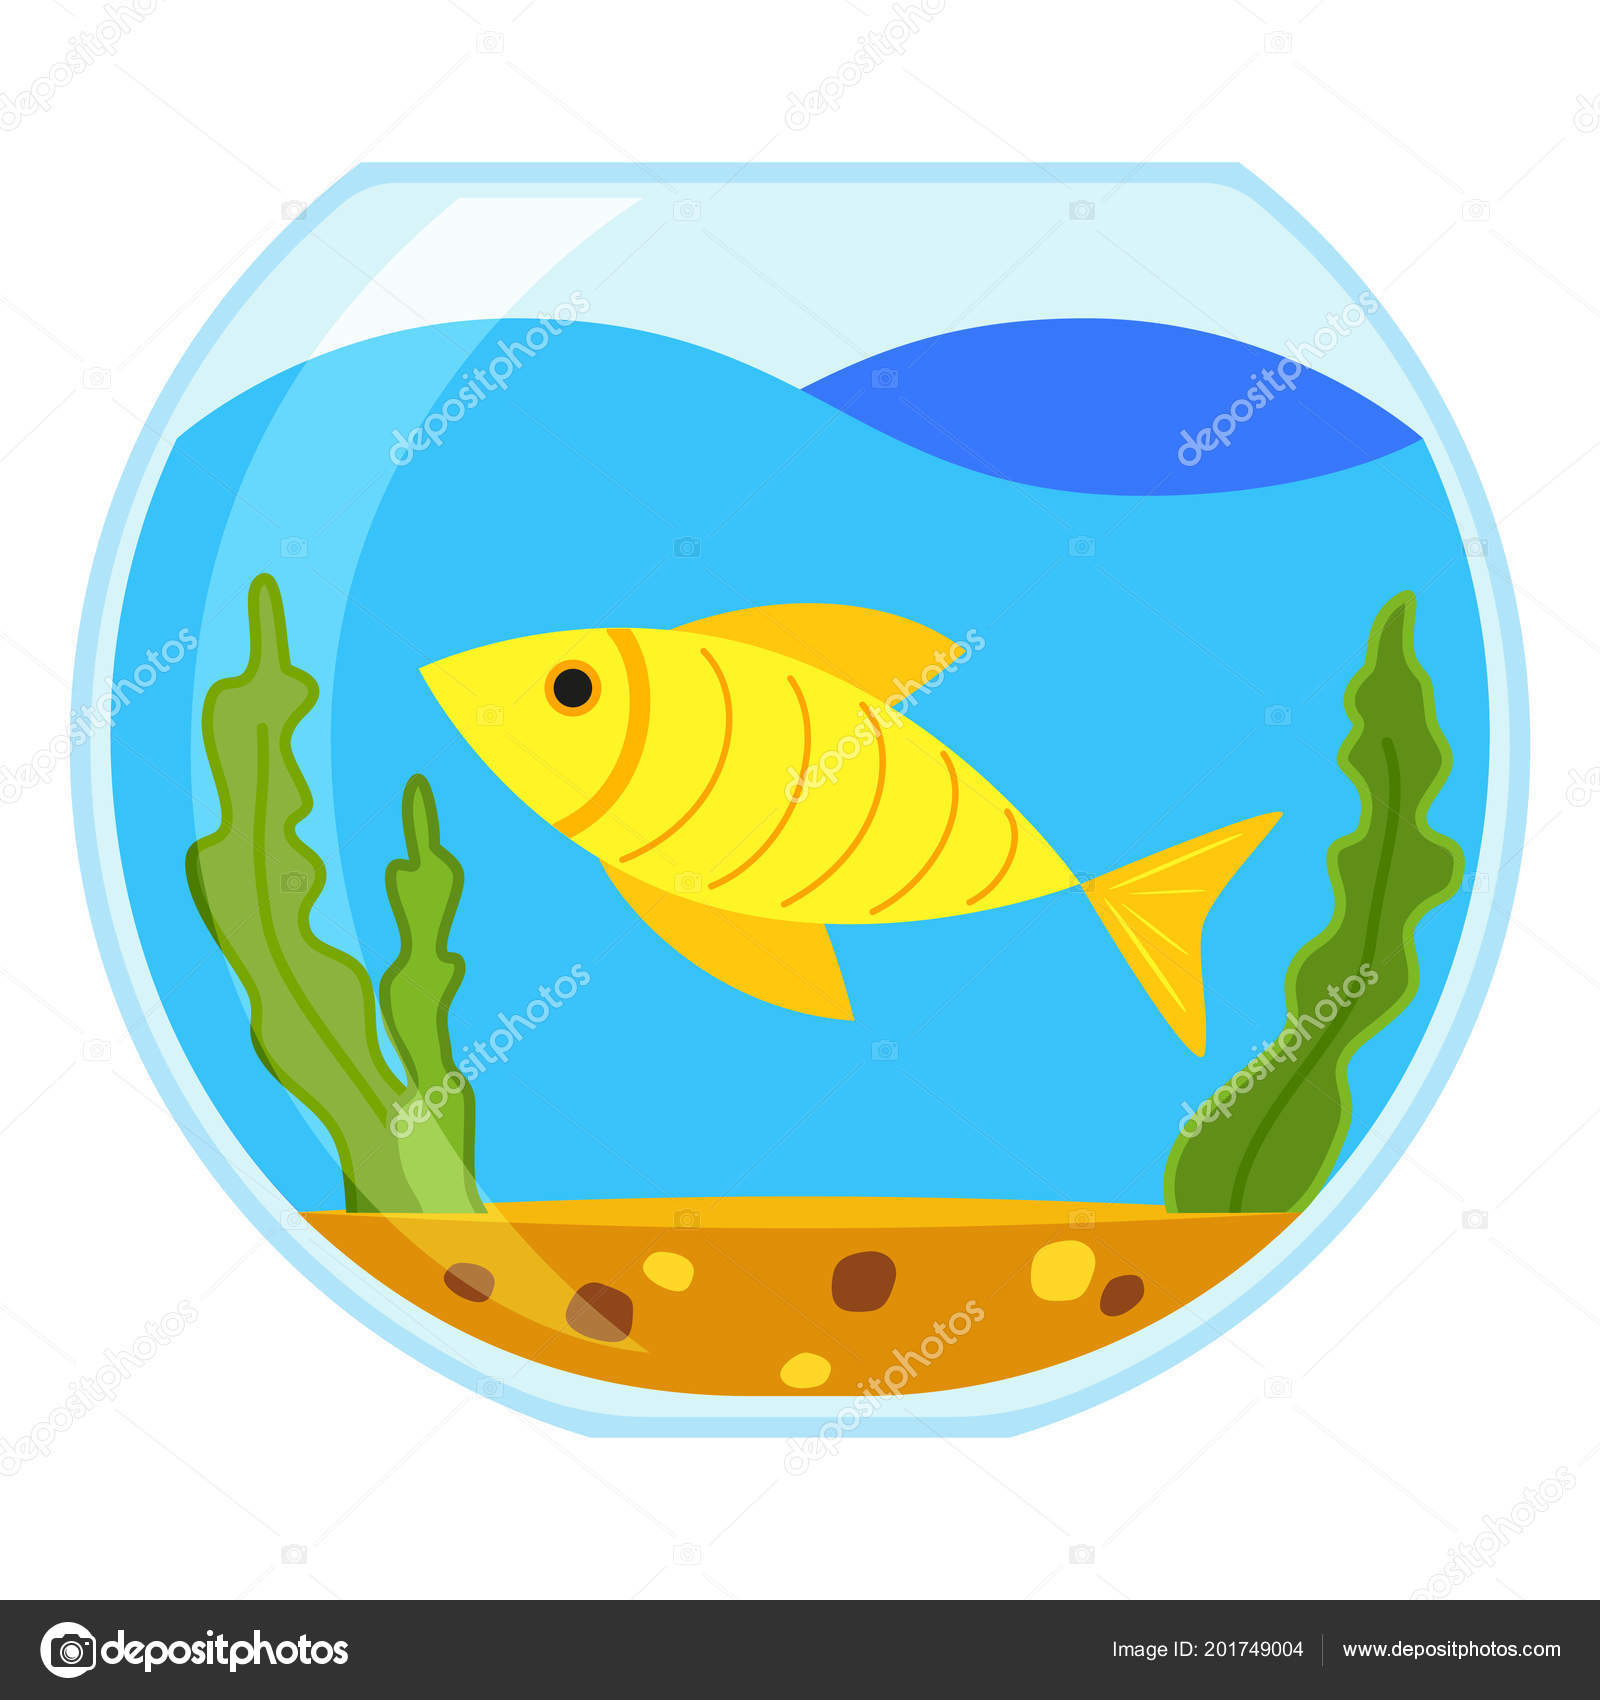 graphic relating to Aquarium Backgrounds Printable referred to as Record: printable backgrounds for fish tanks Colourful